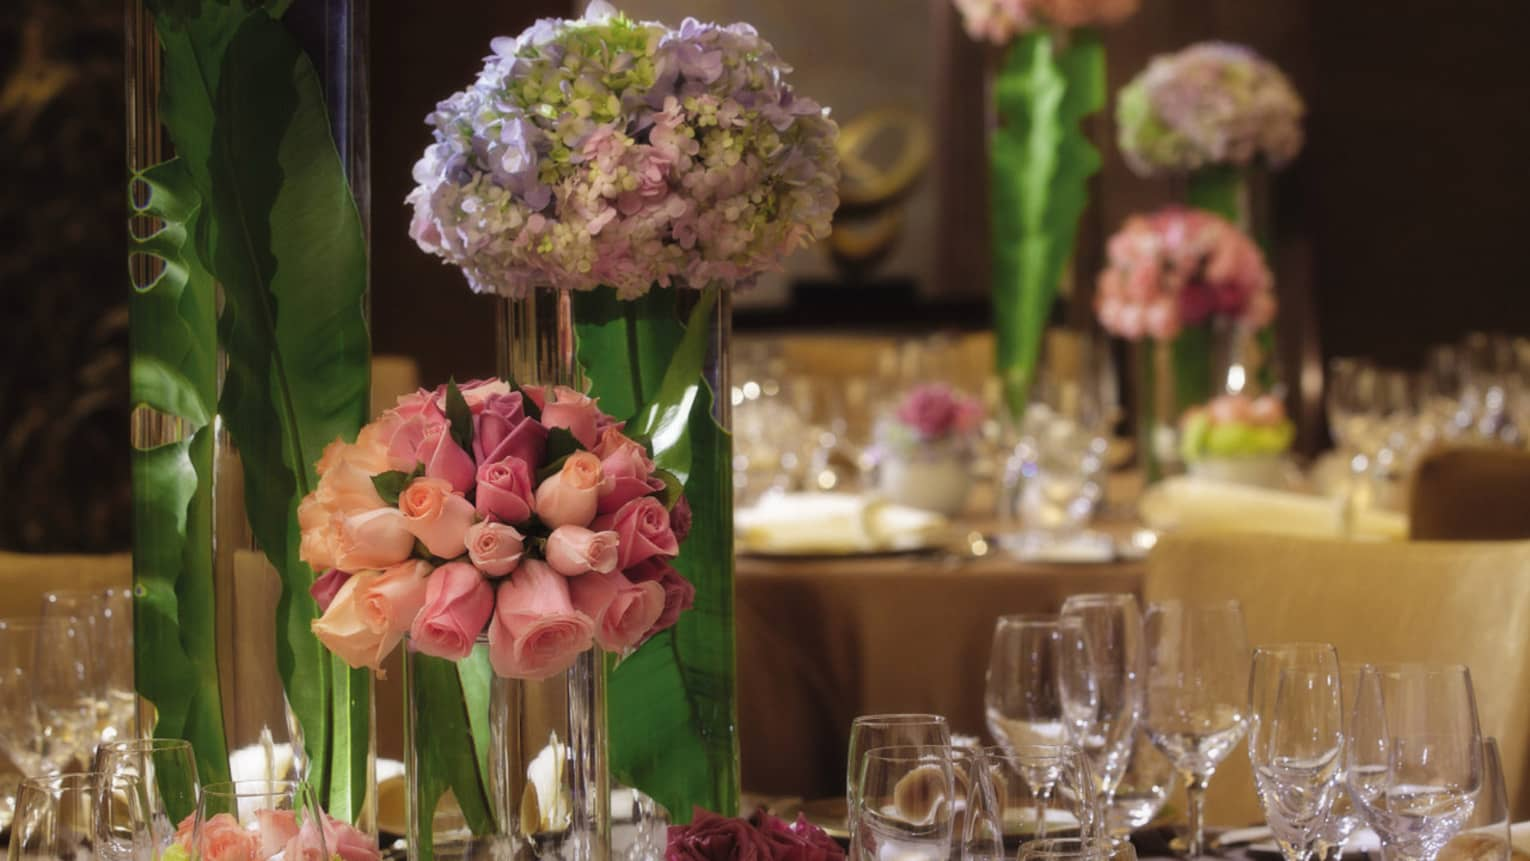 Pink roses in glass vase on formal dining banquet table